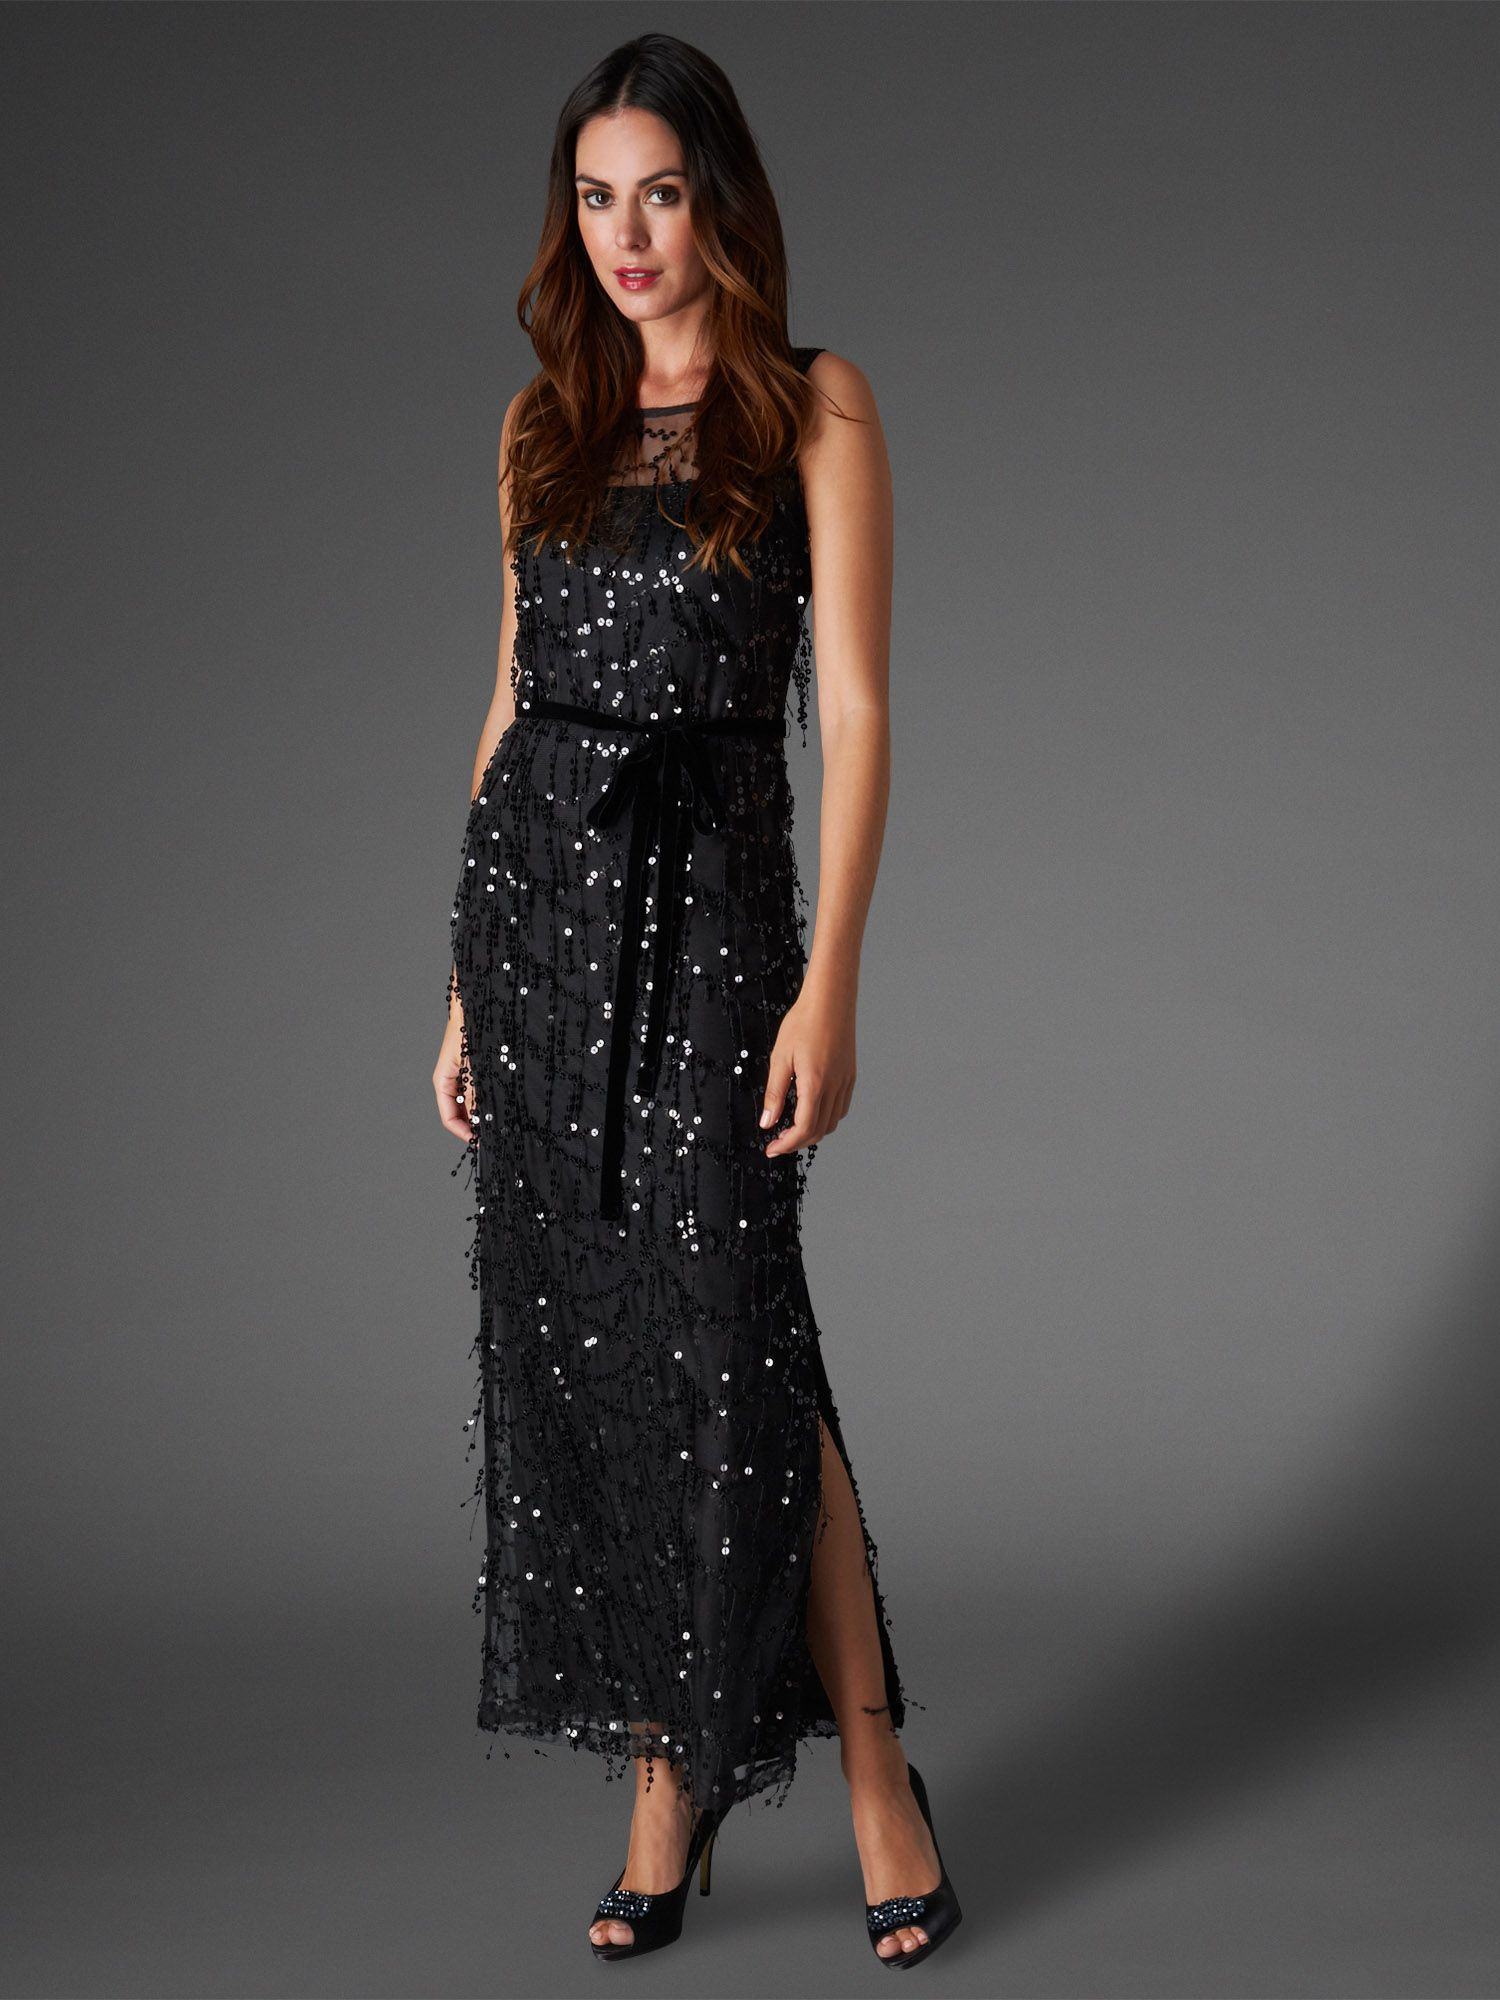 Elecktra sequin full length dress